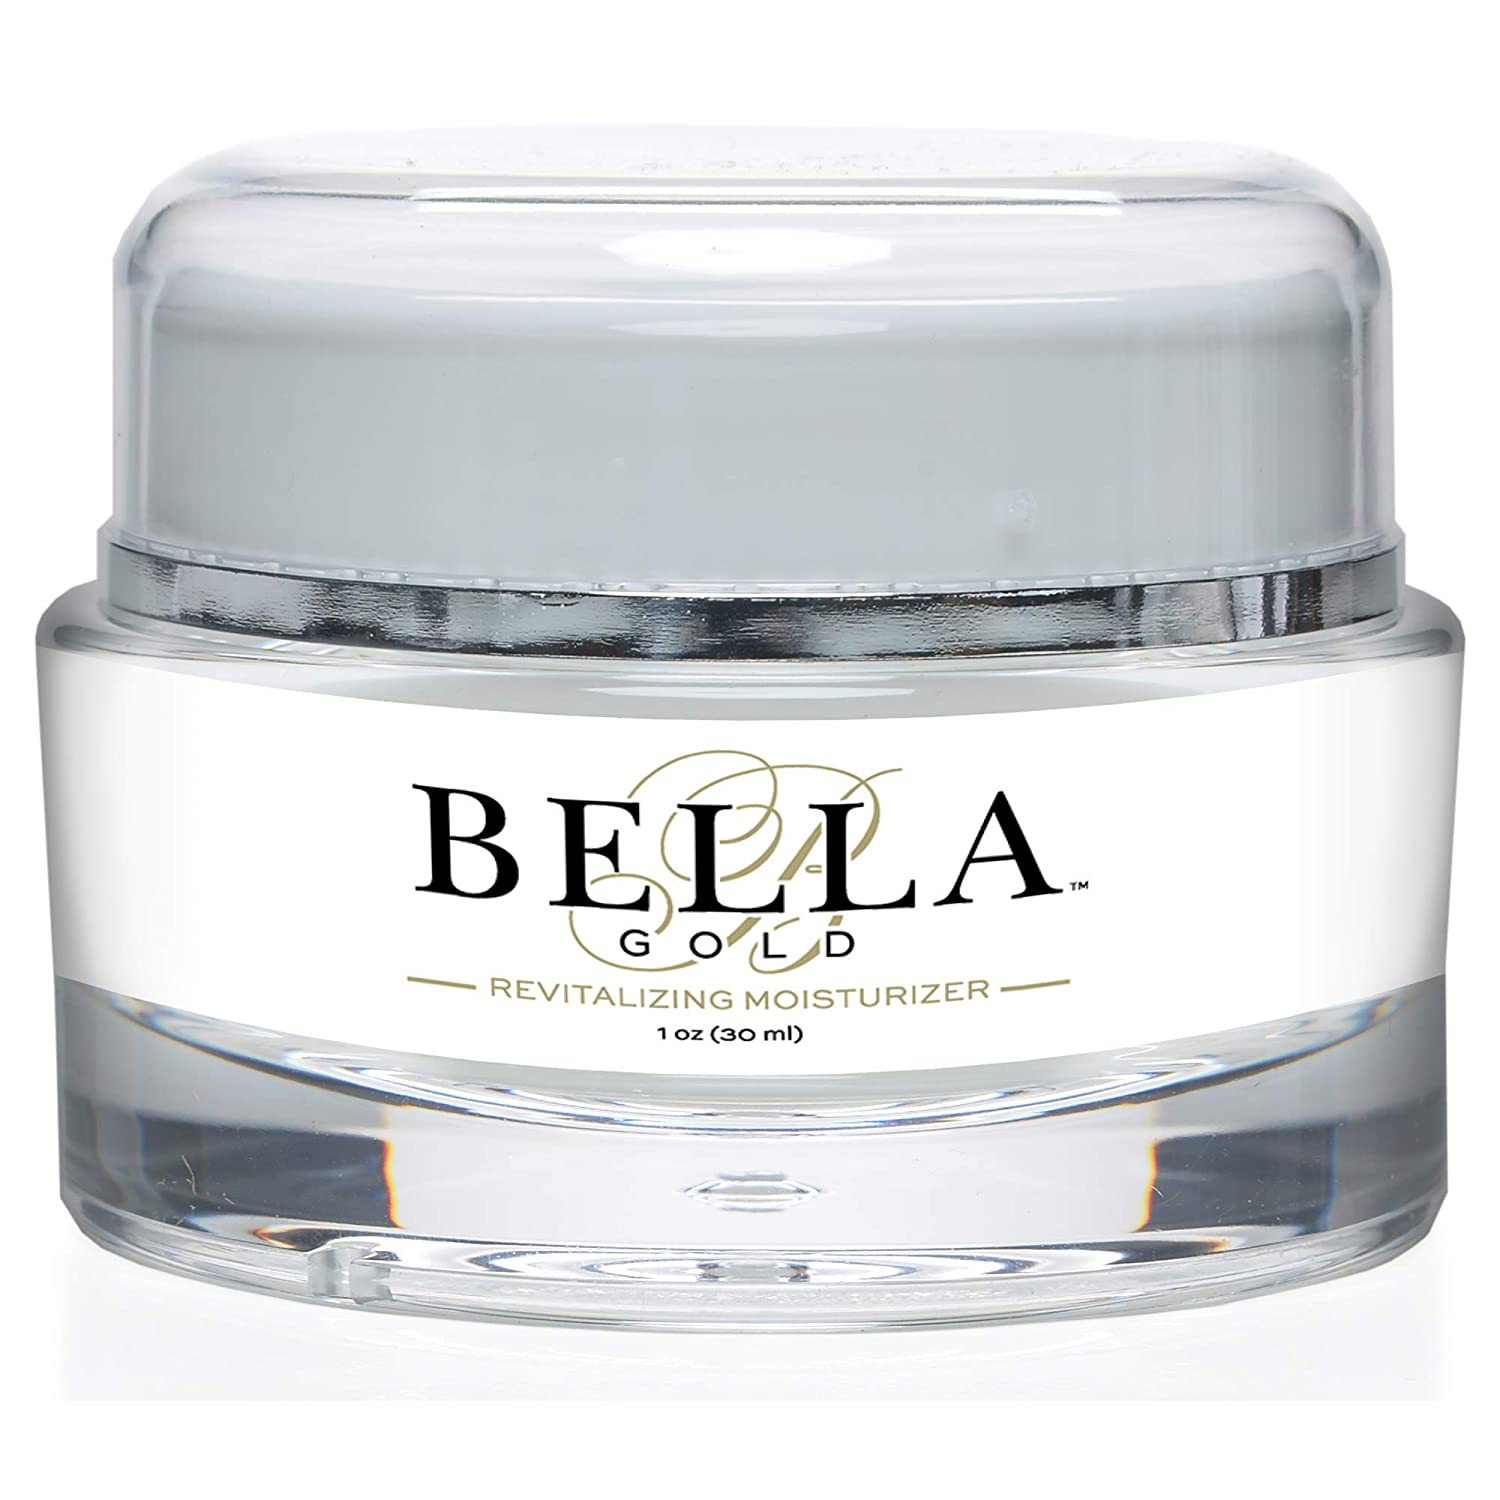 Bella Gold Revitalizing Moisturizer-Breakthrough Formula To Boost Collagen and Elastin.